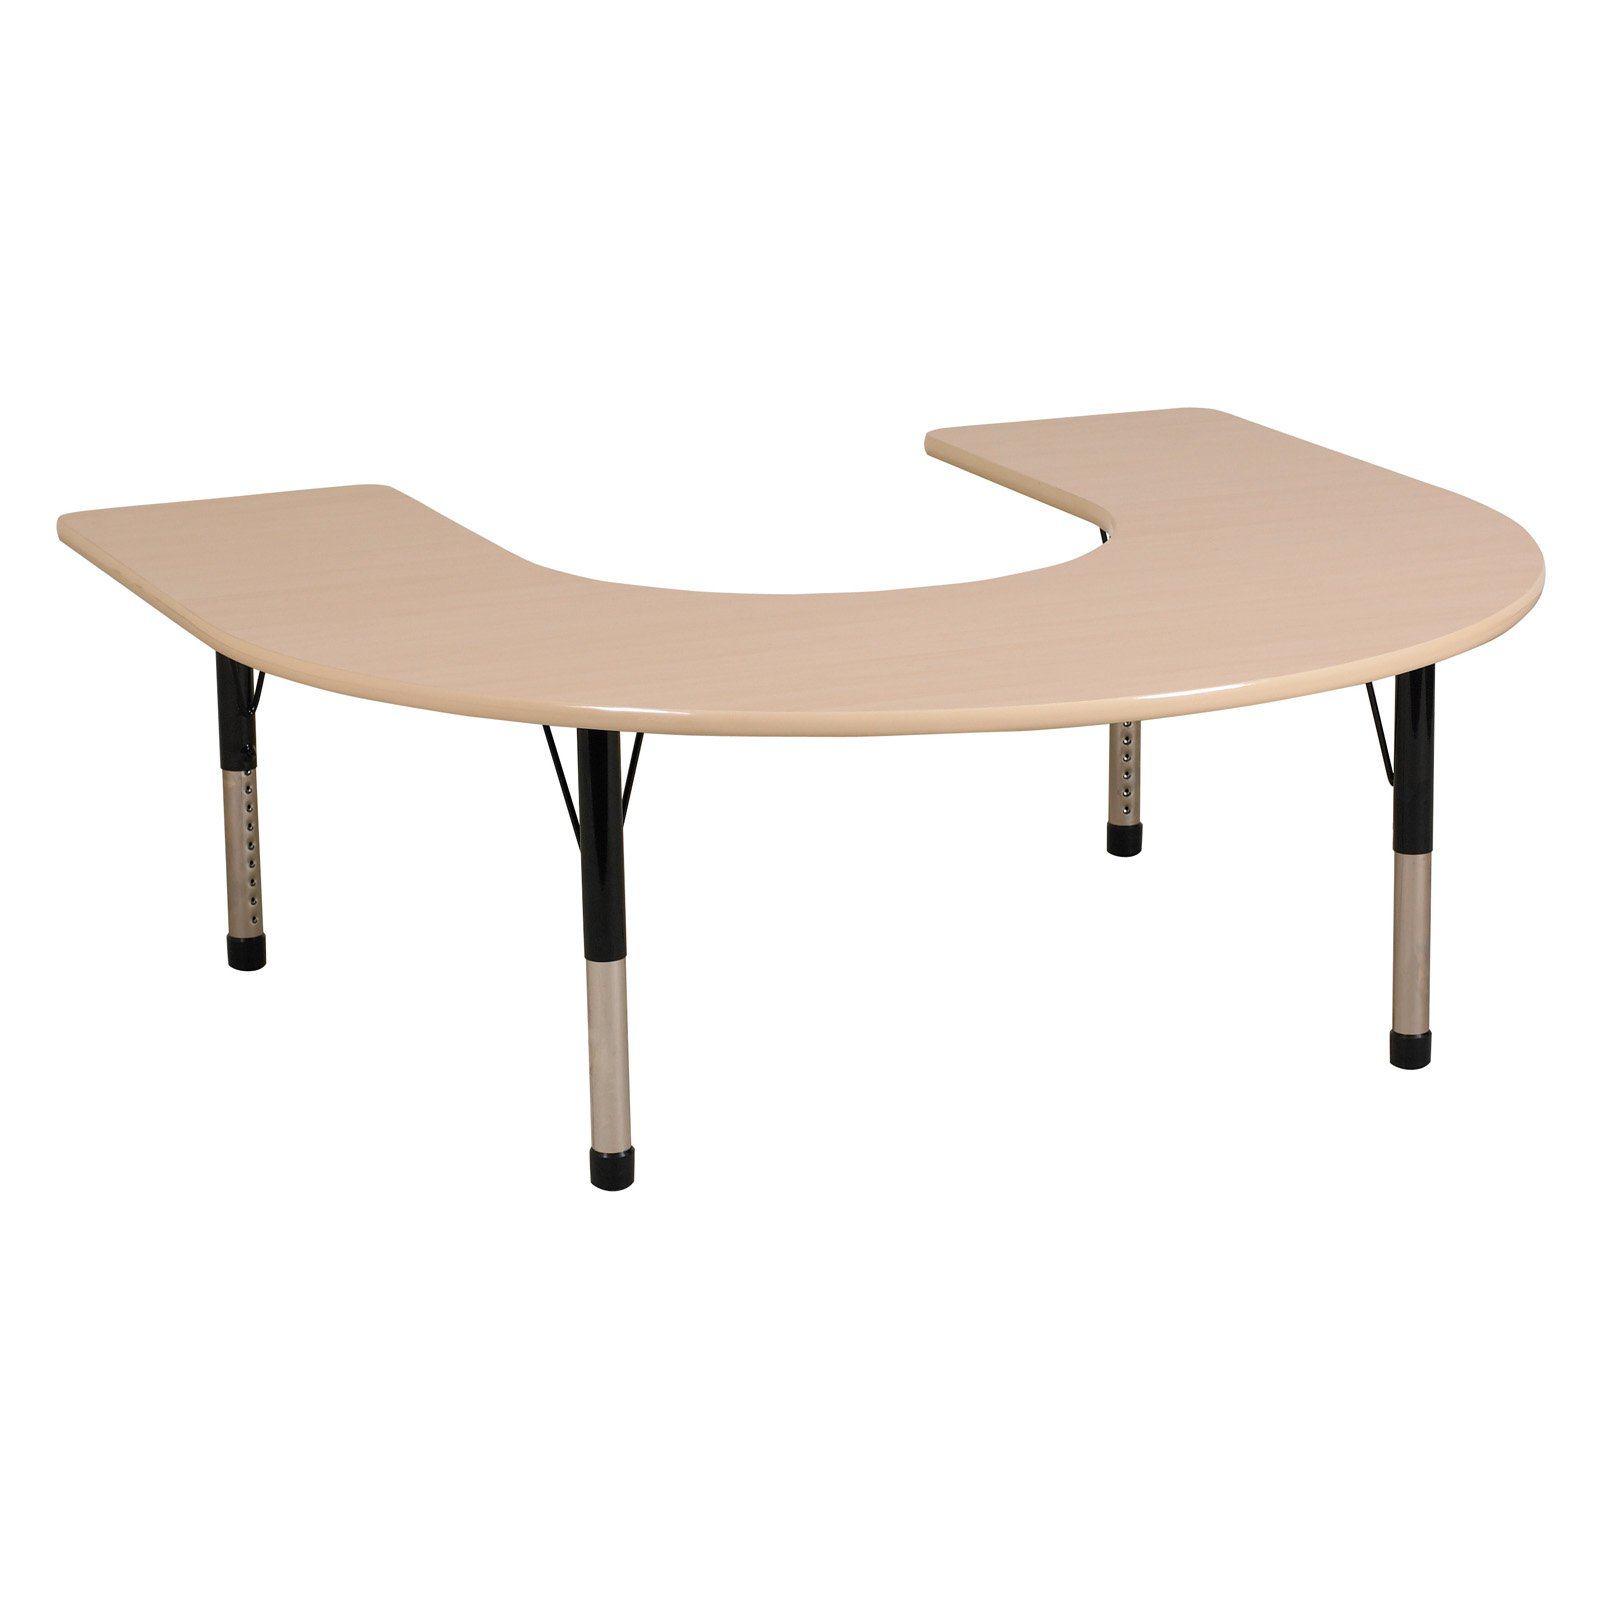 "Horseshoe Table 60""x66""-Glide:Chunky"